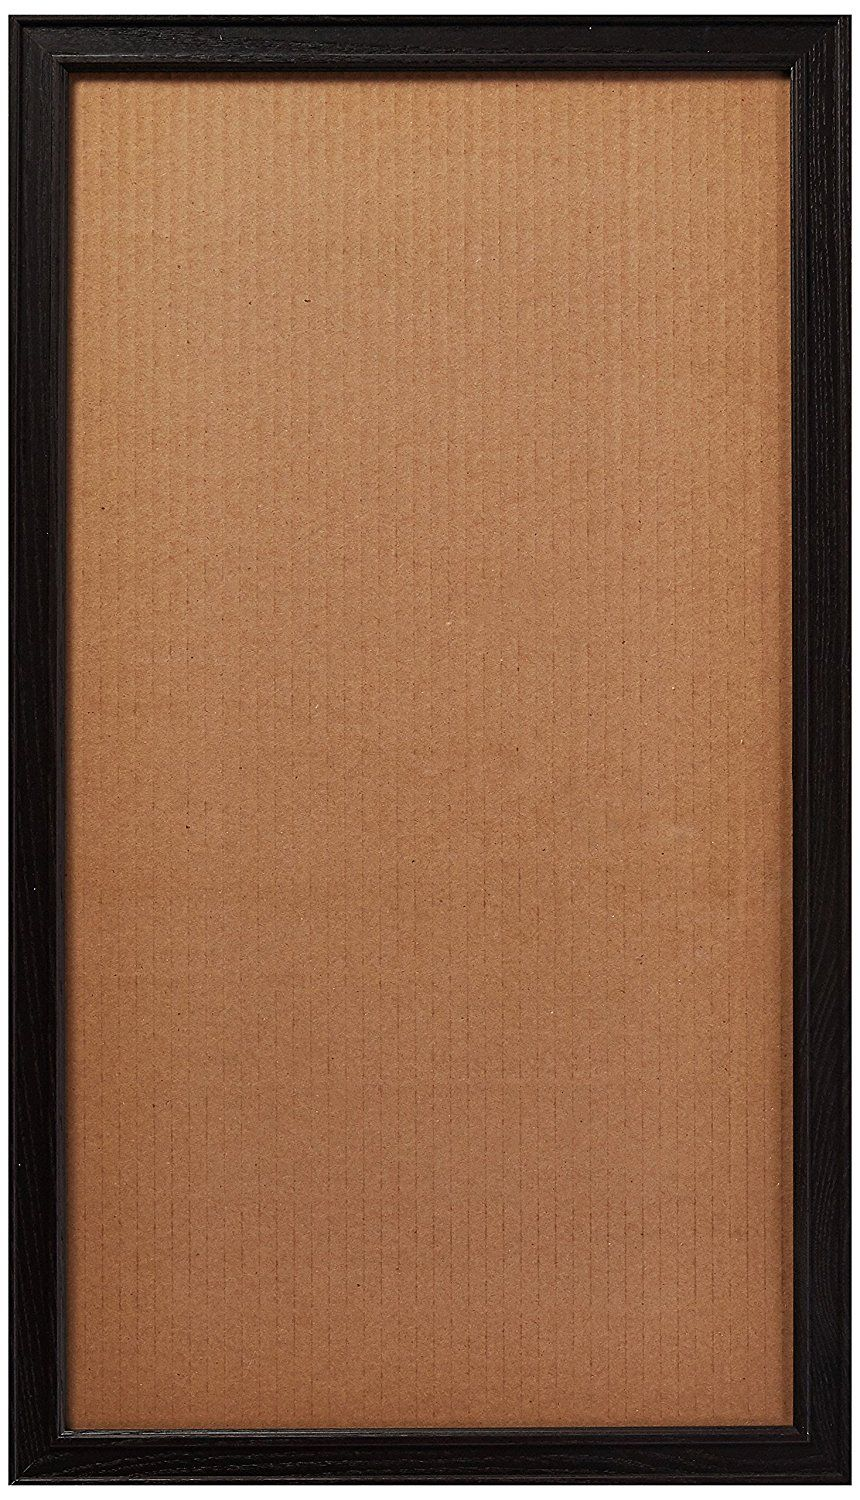 Arttoframes 10x16 Inch Black Stain On Maple Wood Picture Frame